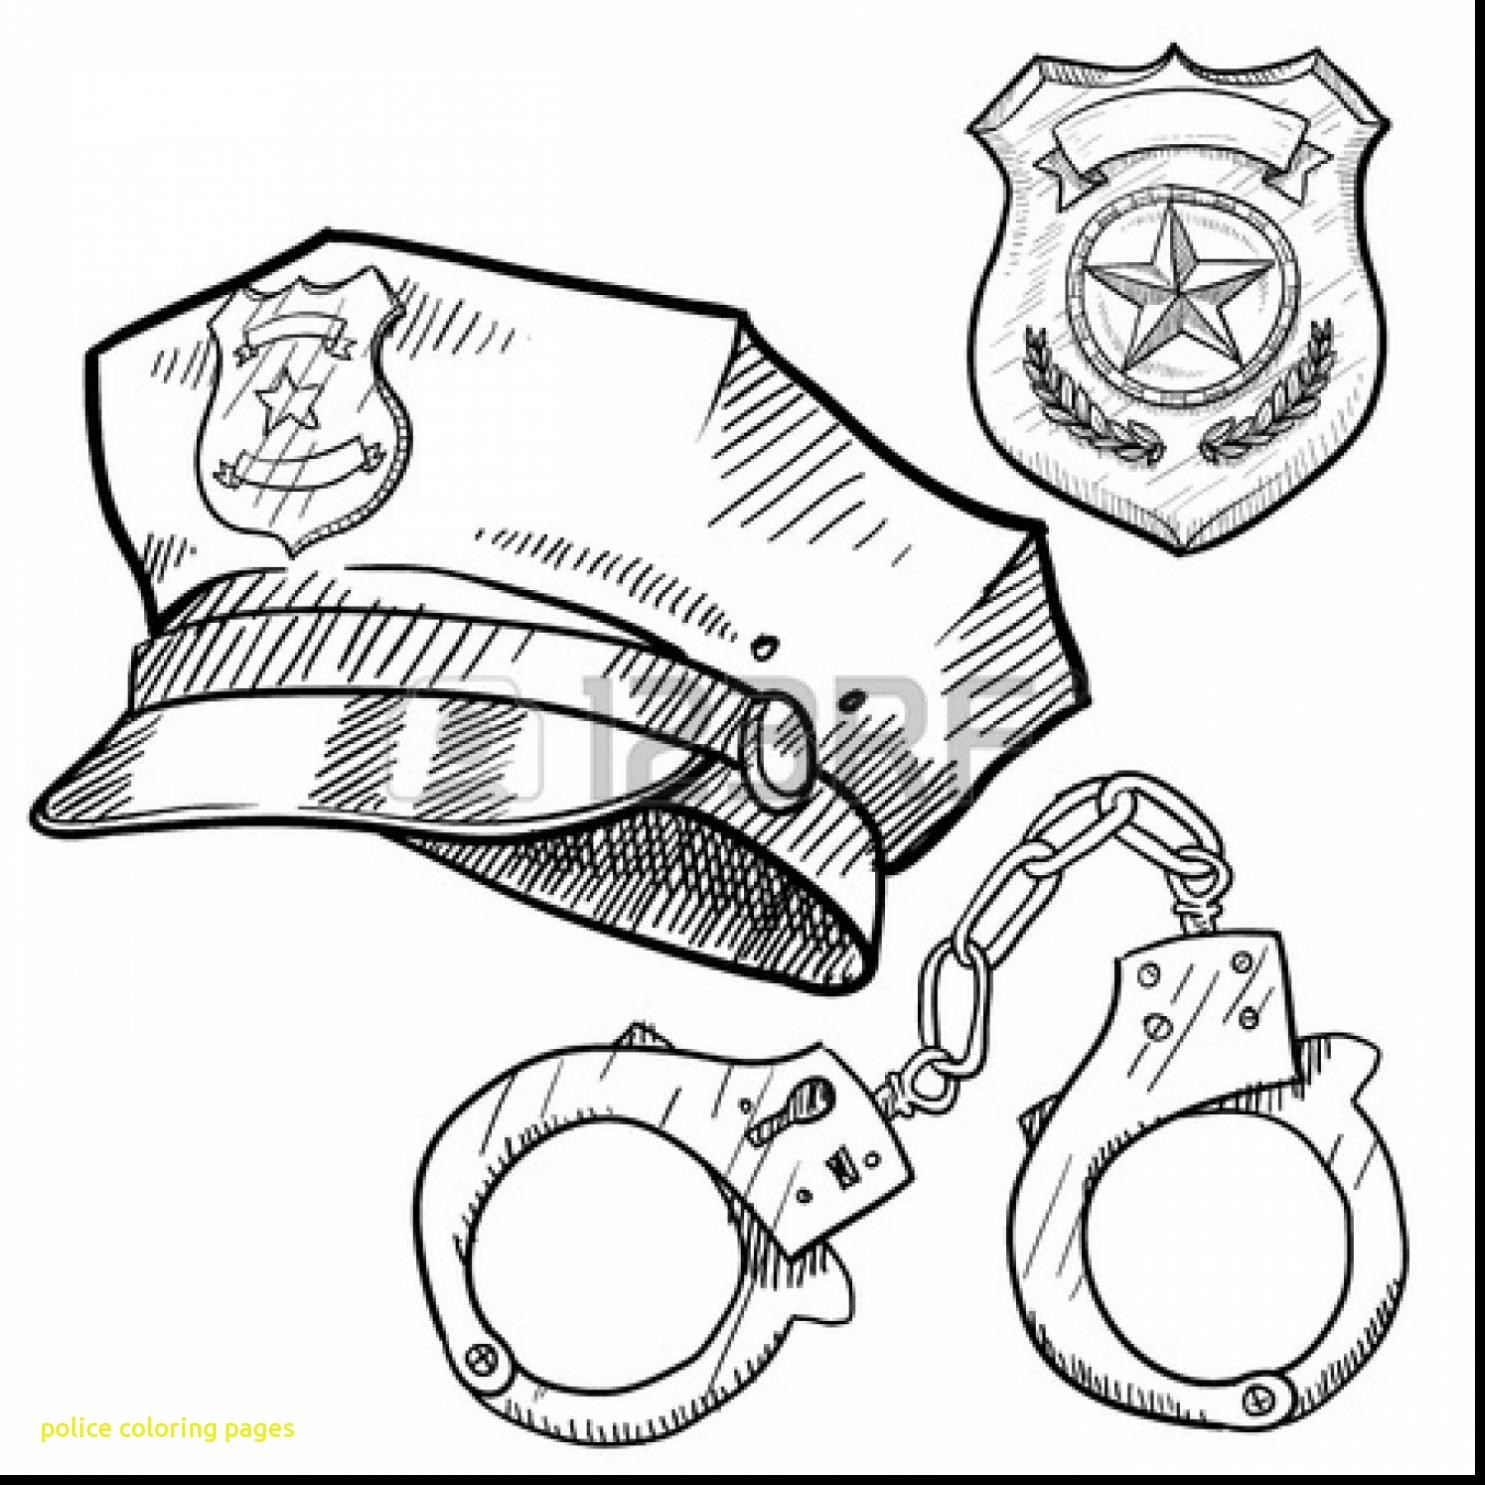 1485x1485 Instructive Police Colouring Pictures Coloring